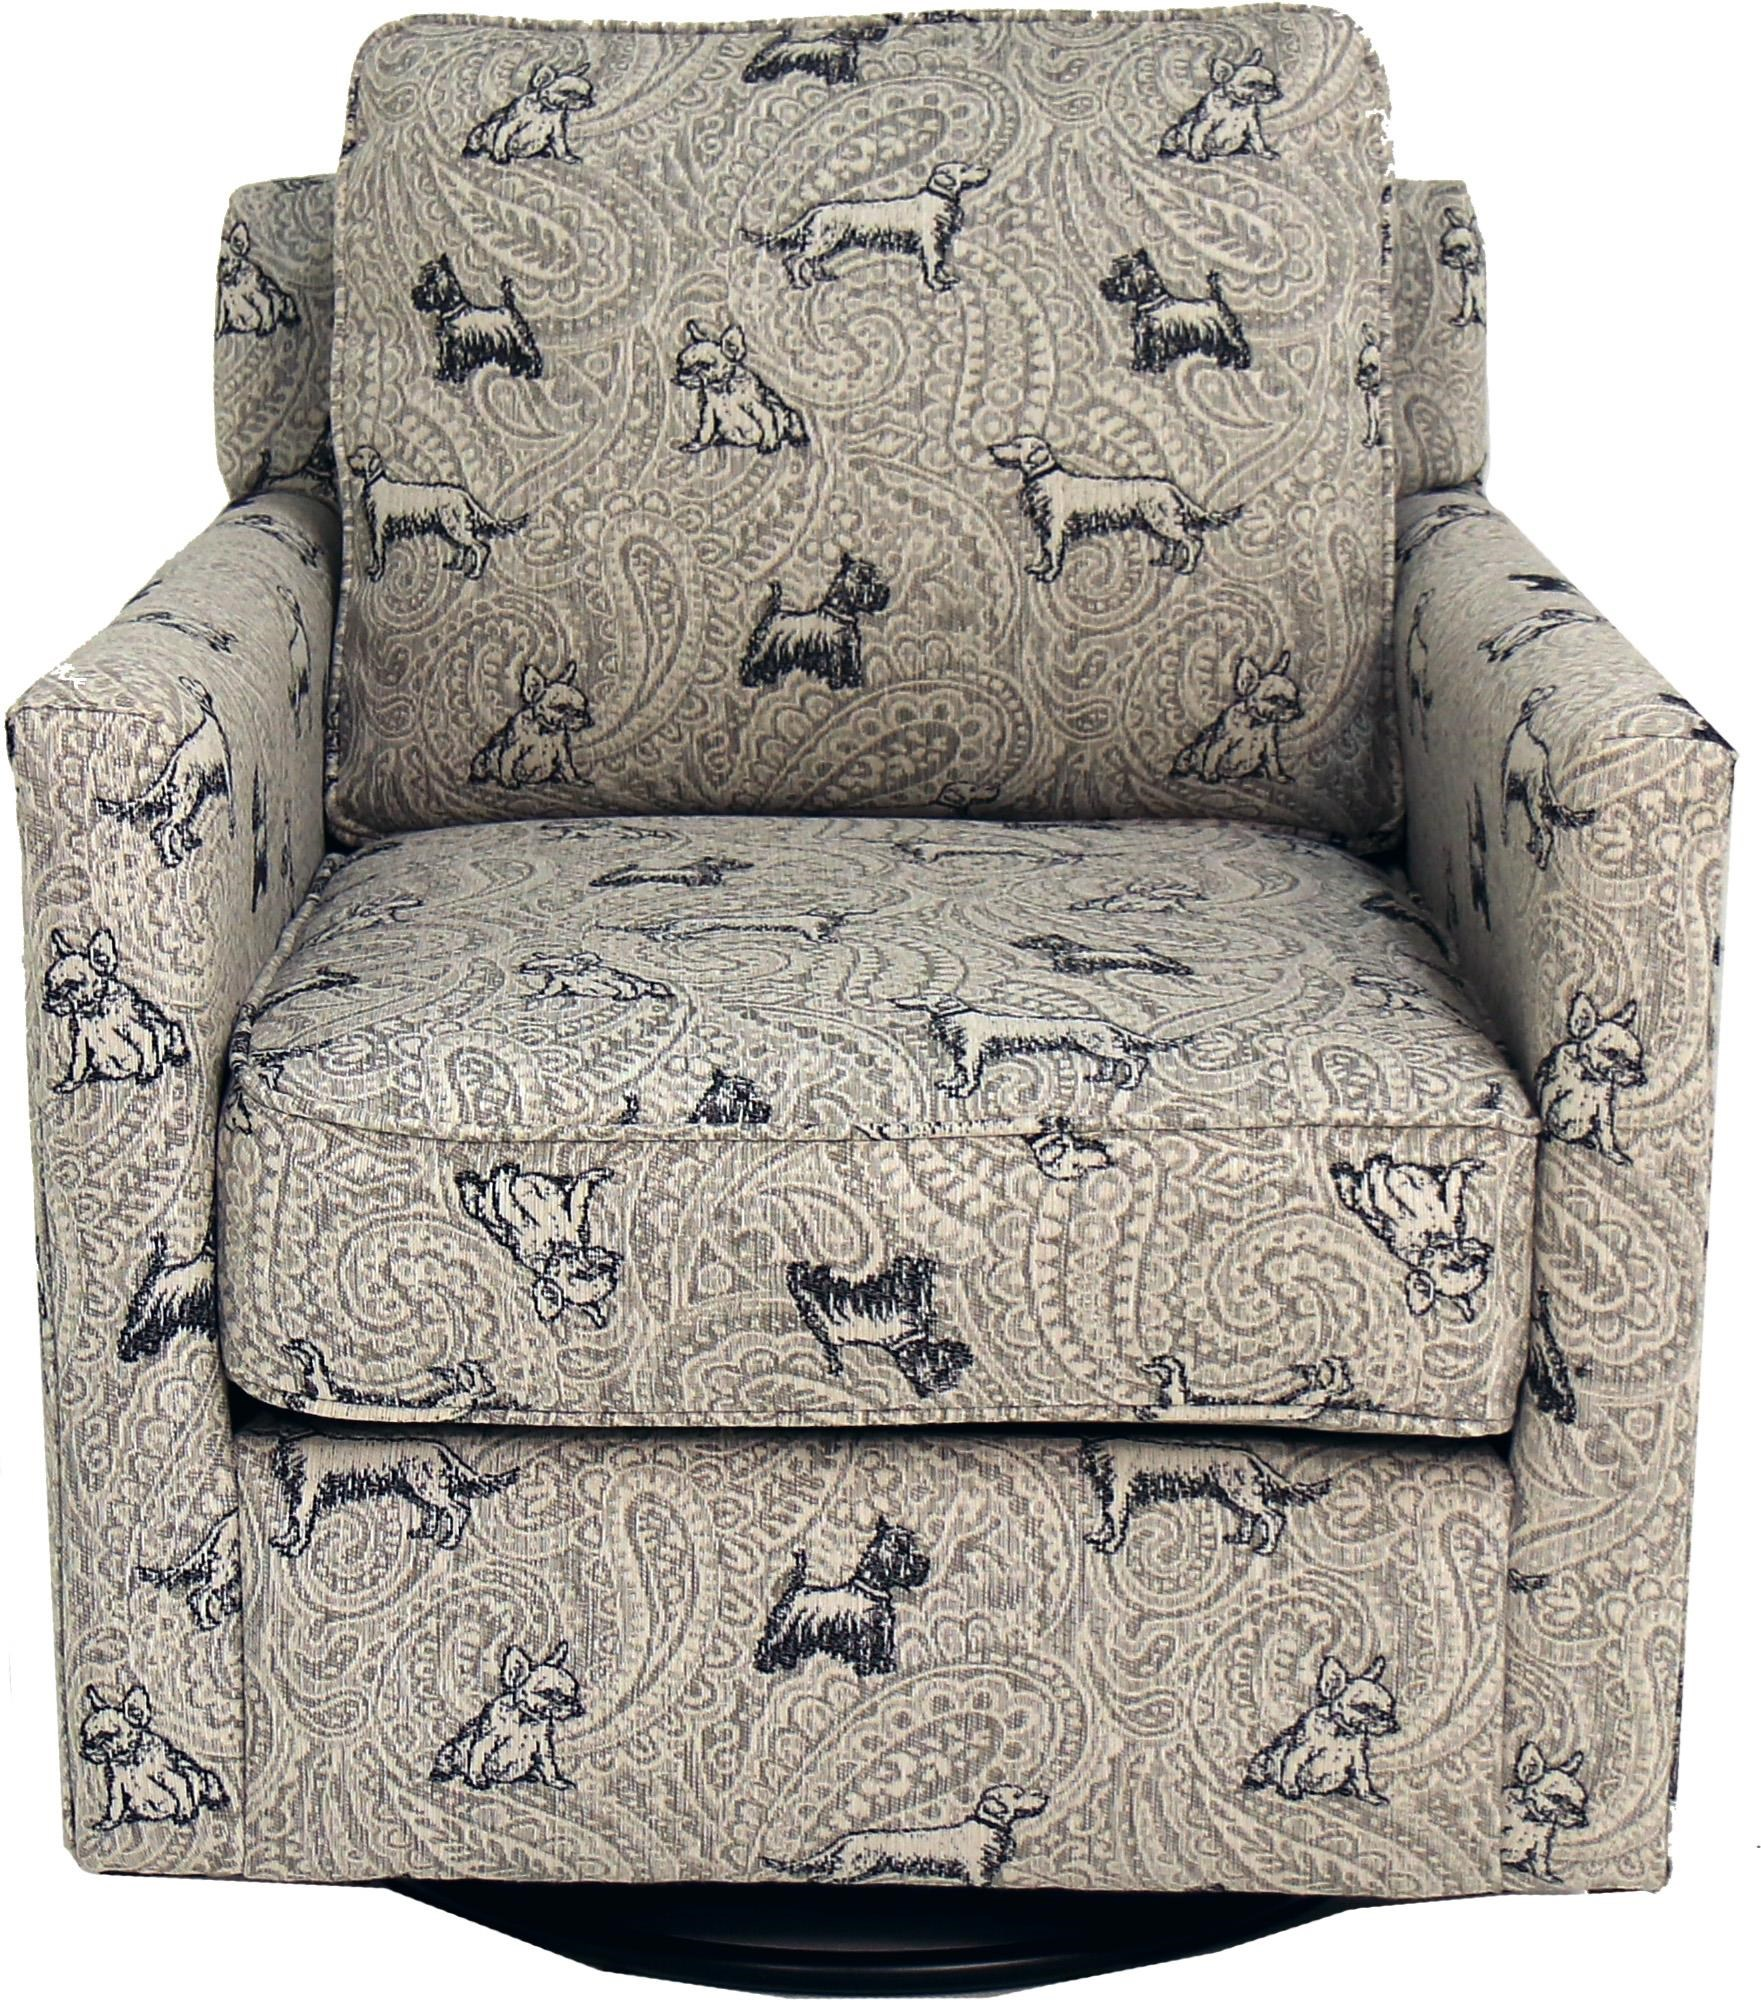 21-02 Swivel Glider Chair by Fusion Furniture at Becker Furniture